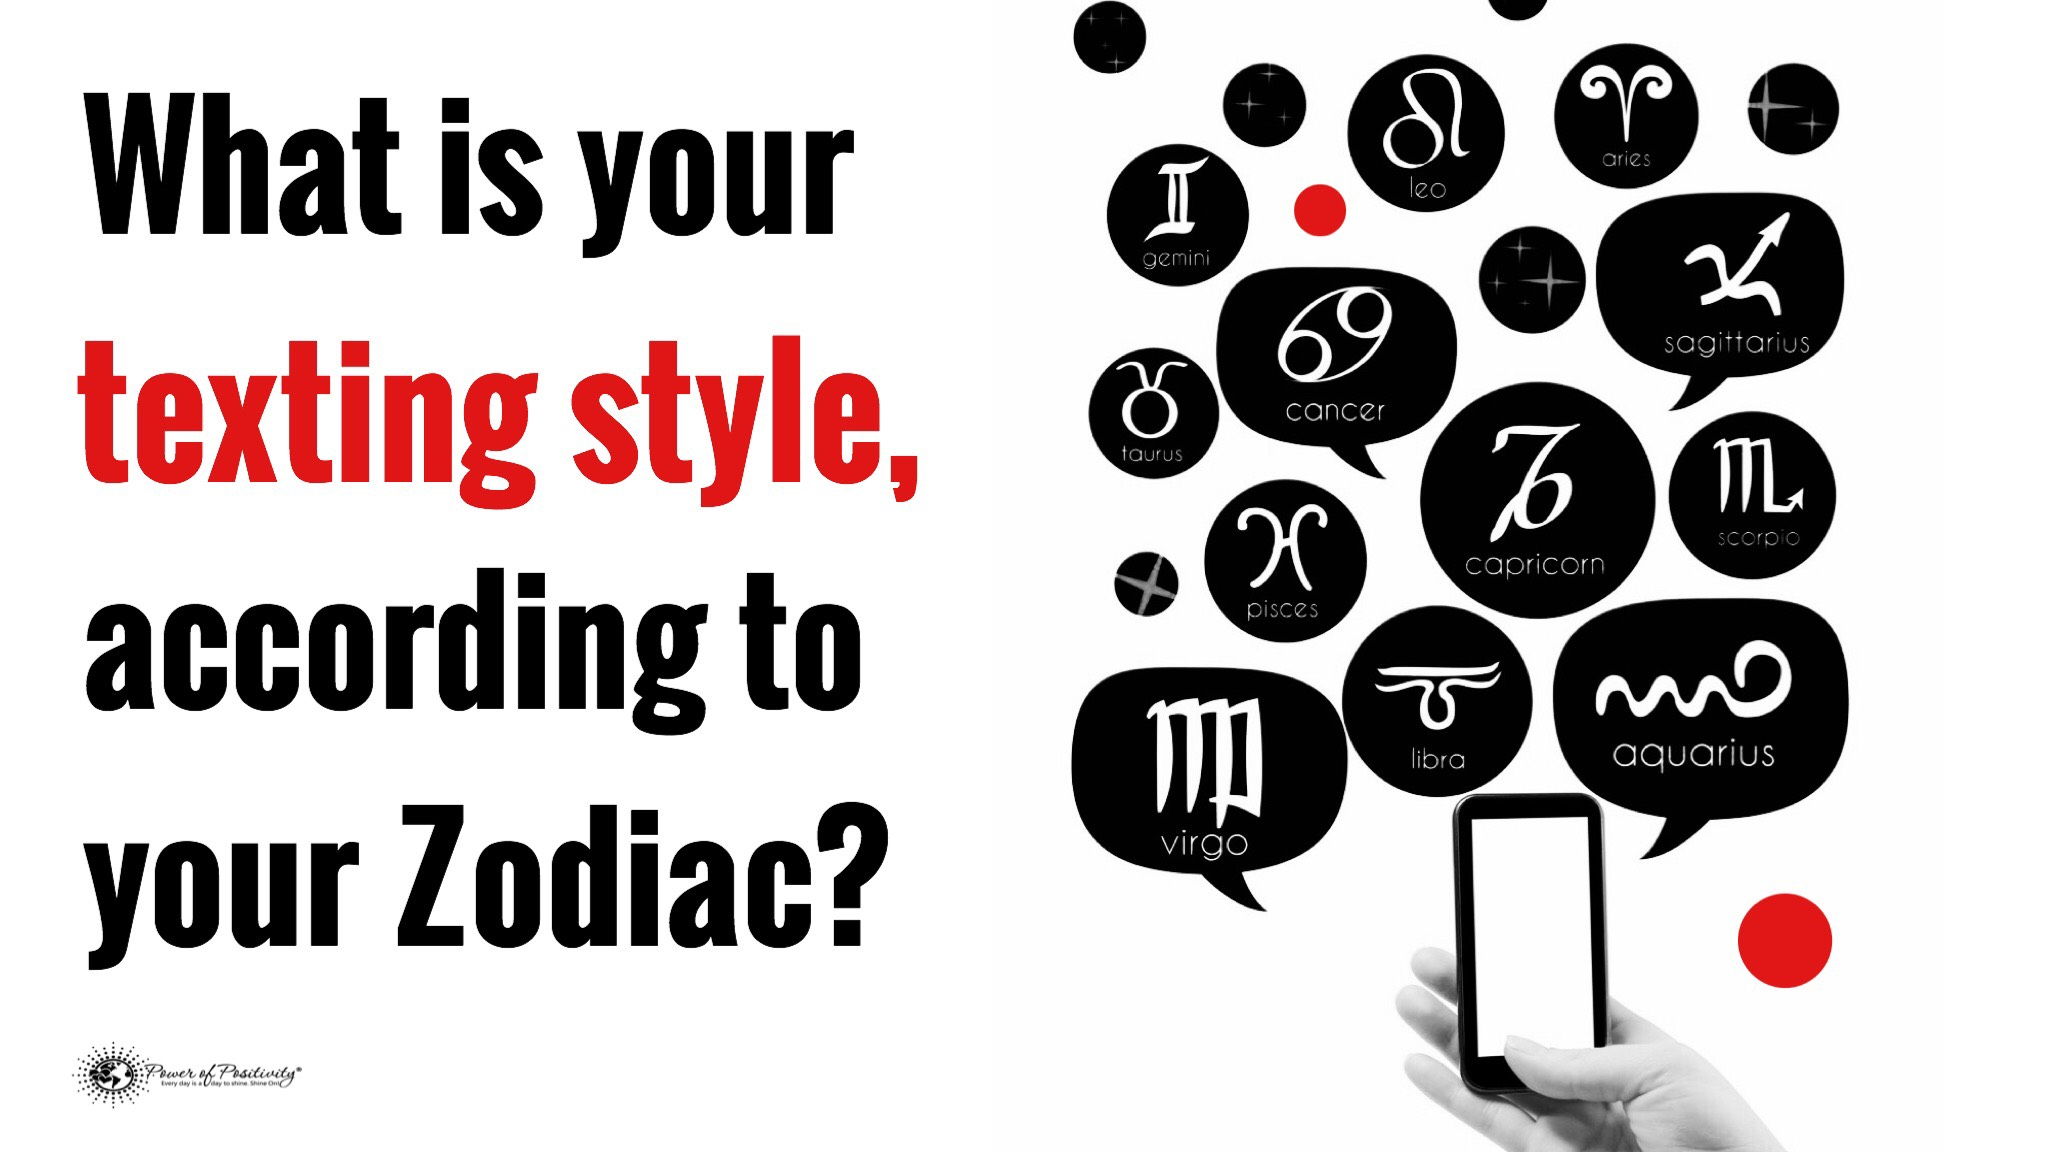 What Is Your Texting Style, According To Your Zodiac Sign?